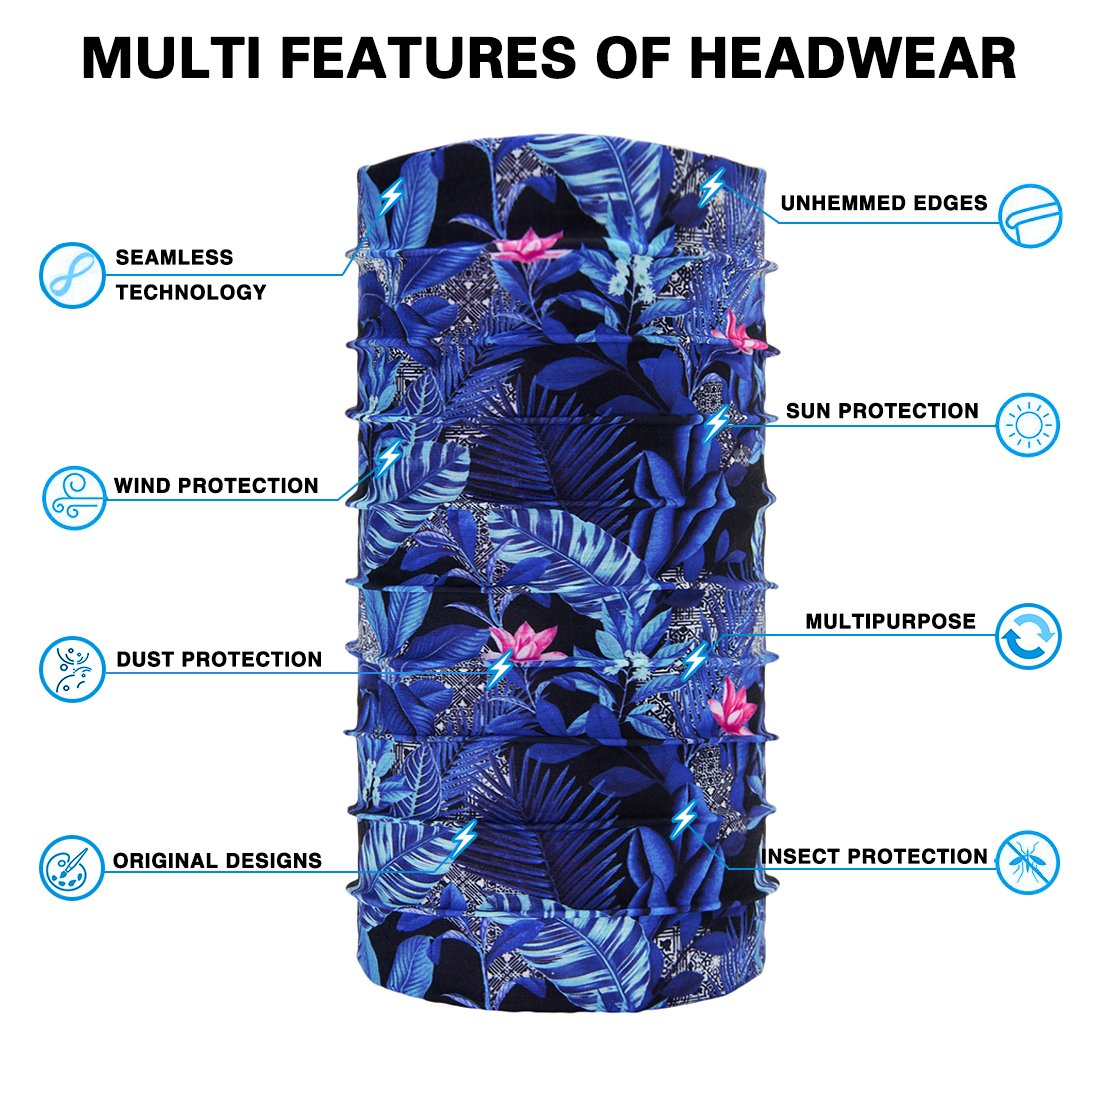 TUONROAD 3D Printed Floral Blue Leaves Pink Flowers Magic Headband Sweatband Custom SPF Scarf Tube Snood Face Bandana Multifunctional Headwear for Snowboarding Skiing Snowmobile Riding Yard working